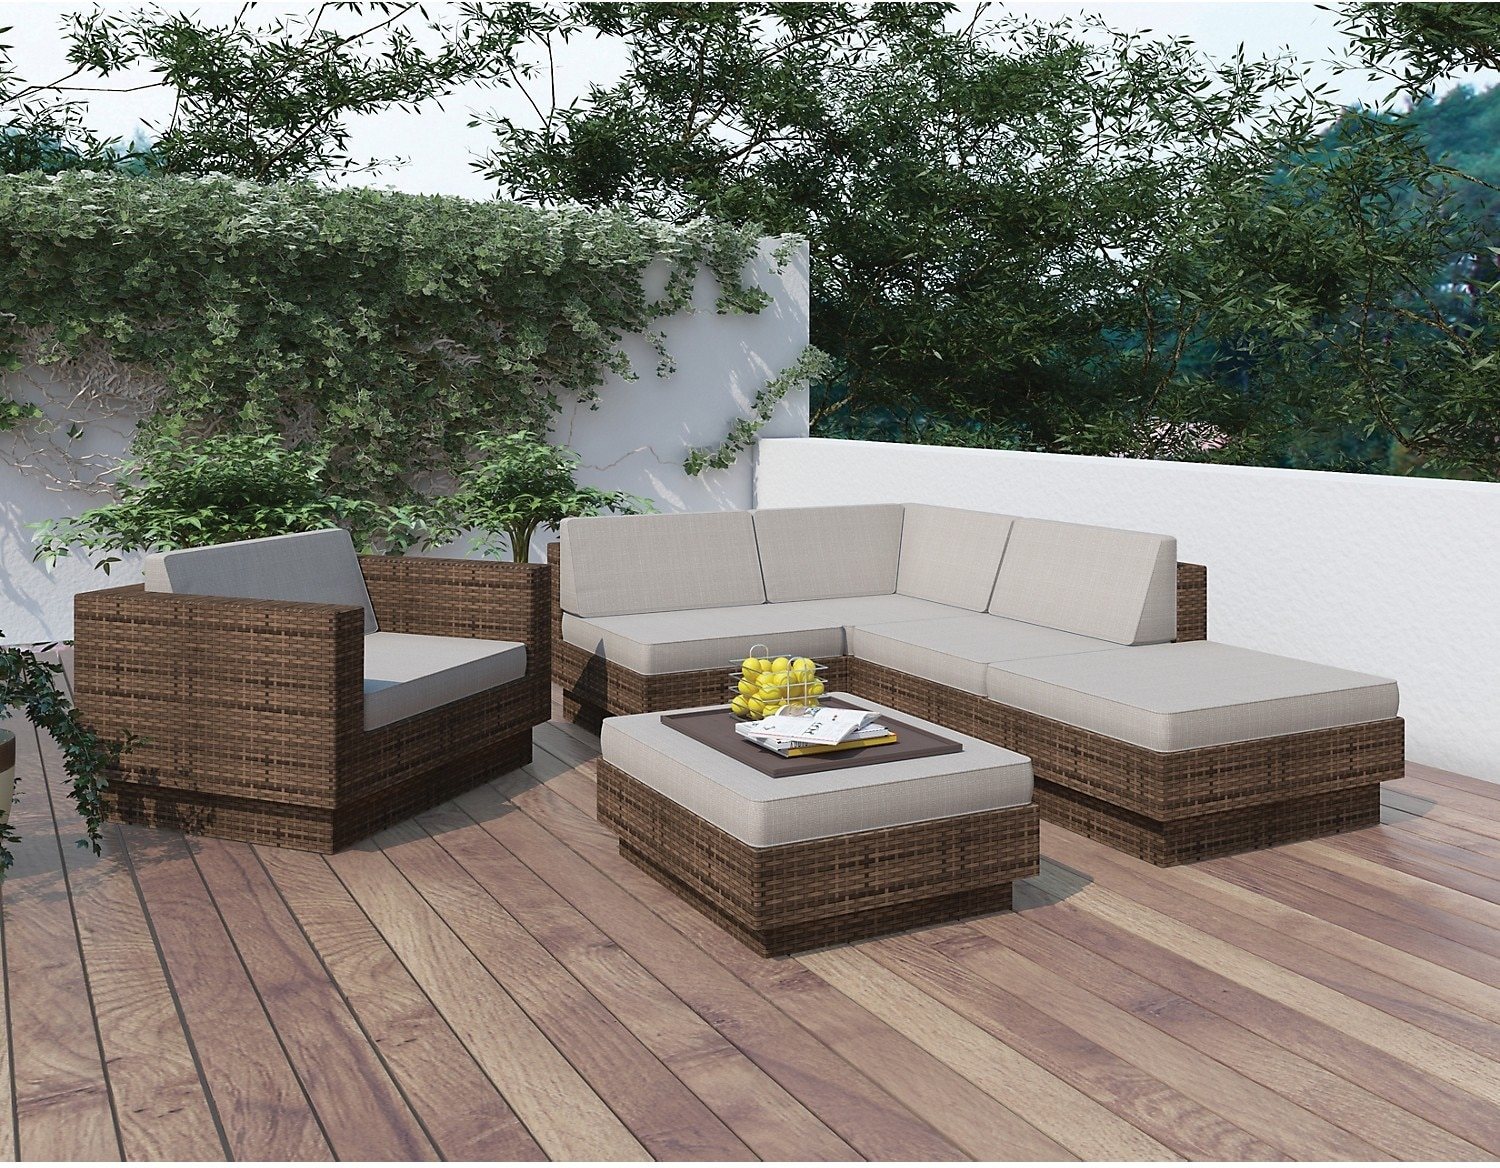 Park Terrace 6-Piece Patio Set – Brown, No Armrest